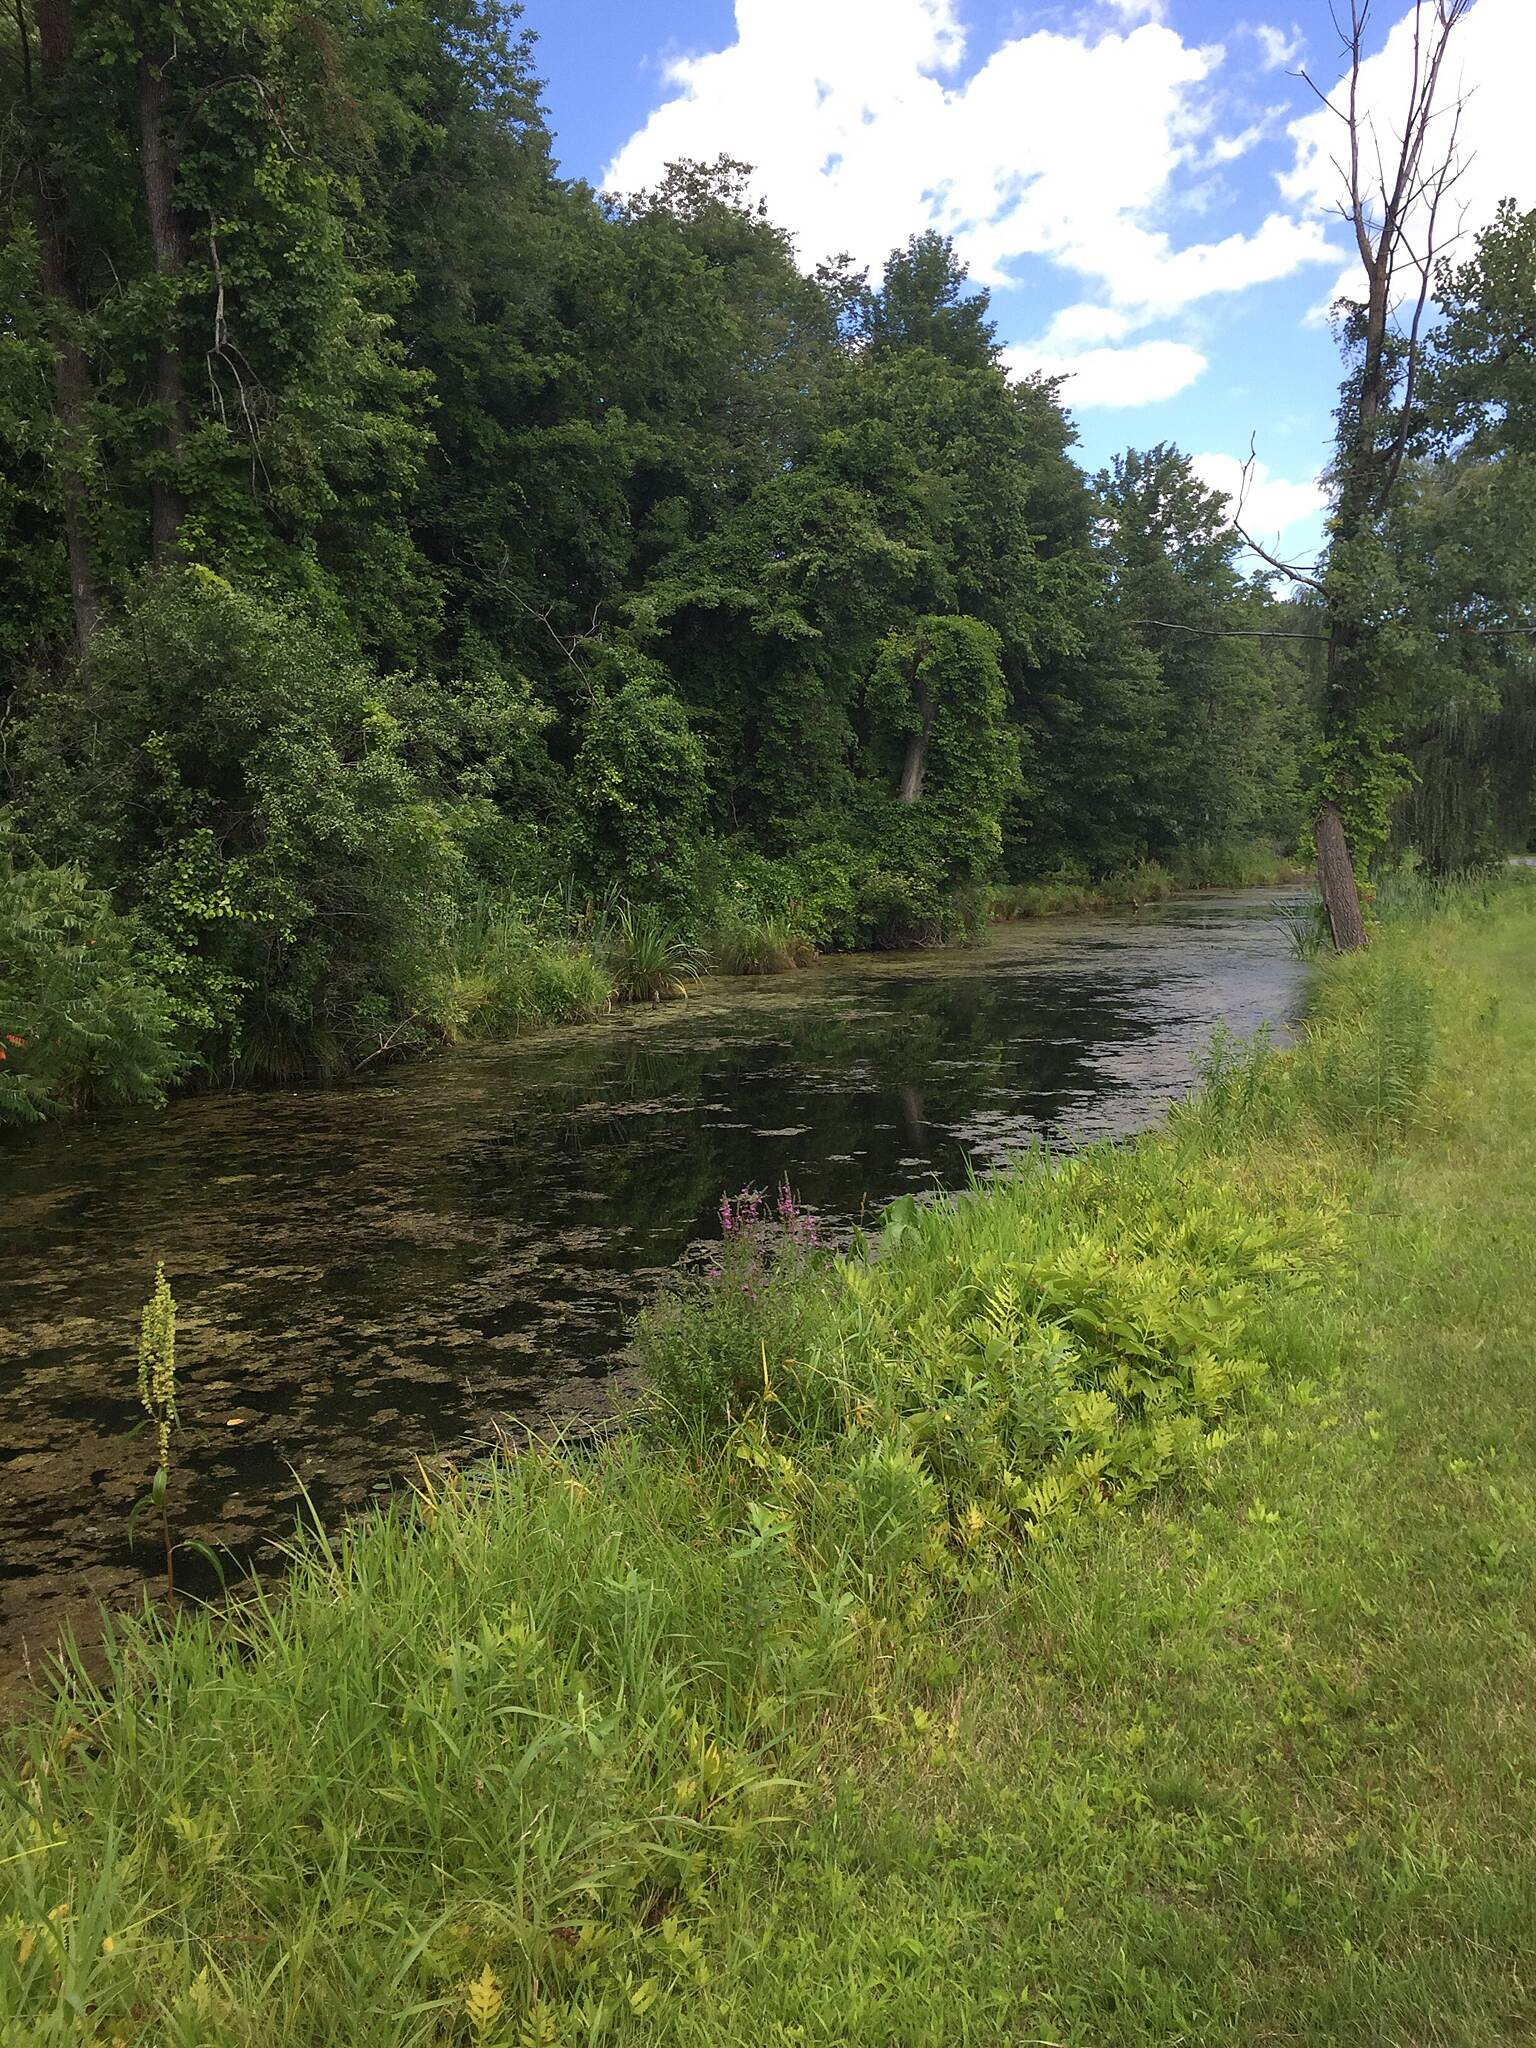 Champlain Canalway Trail: Glens Falls Feeder Canal Trail Champlain Canalway Trail: Glens Falls Feeder Canal Trail